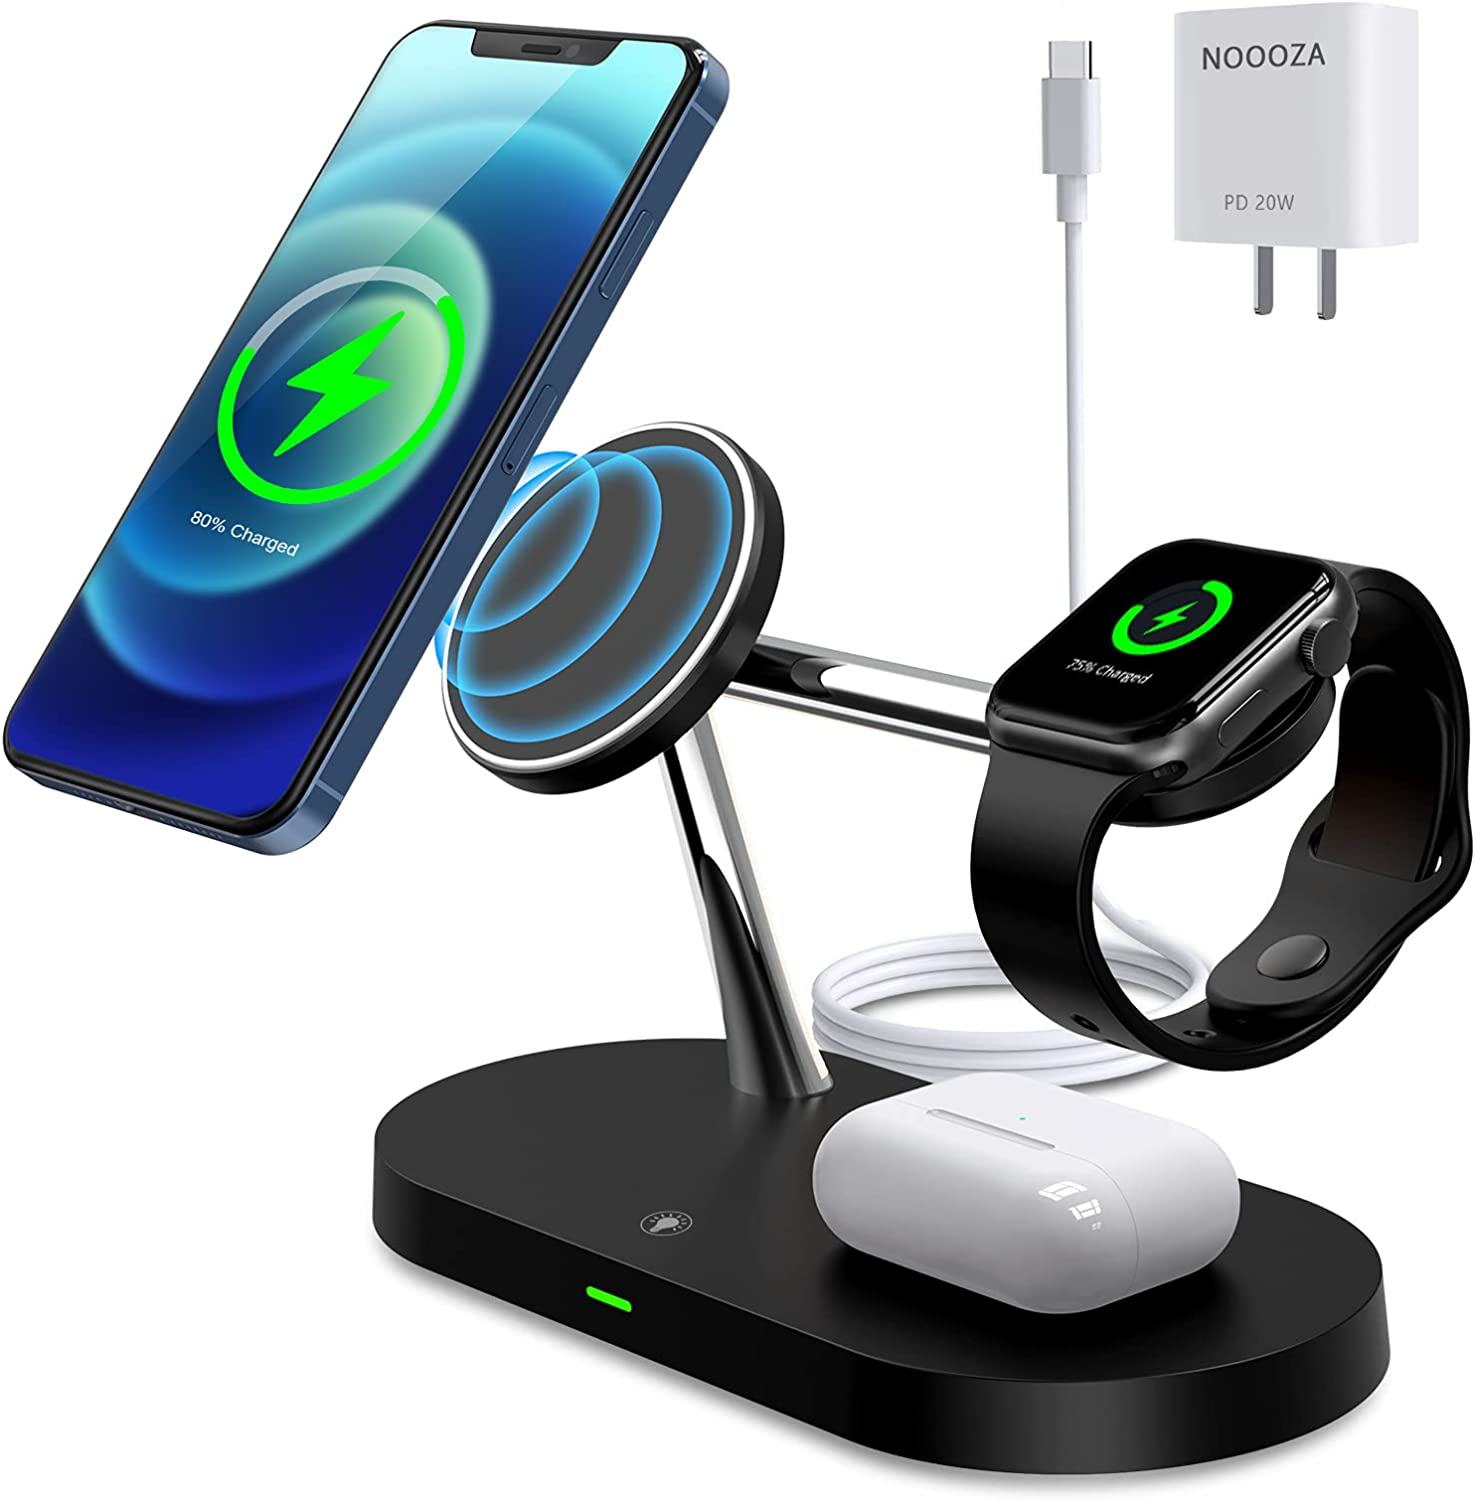 NOOOZA 3 in 1 Magnetic Wireless Charger Fast Charging Station Dock with 20 W QC3.0 Adapter Compatible with iPhone 12/12 Pro Max/Mini/AirPods Pro/AirPods 2 Magsafe Case iwatch Series, Black: Electronics